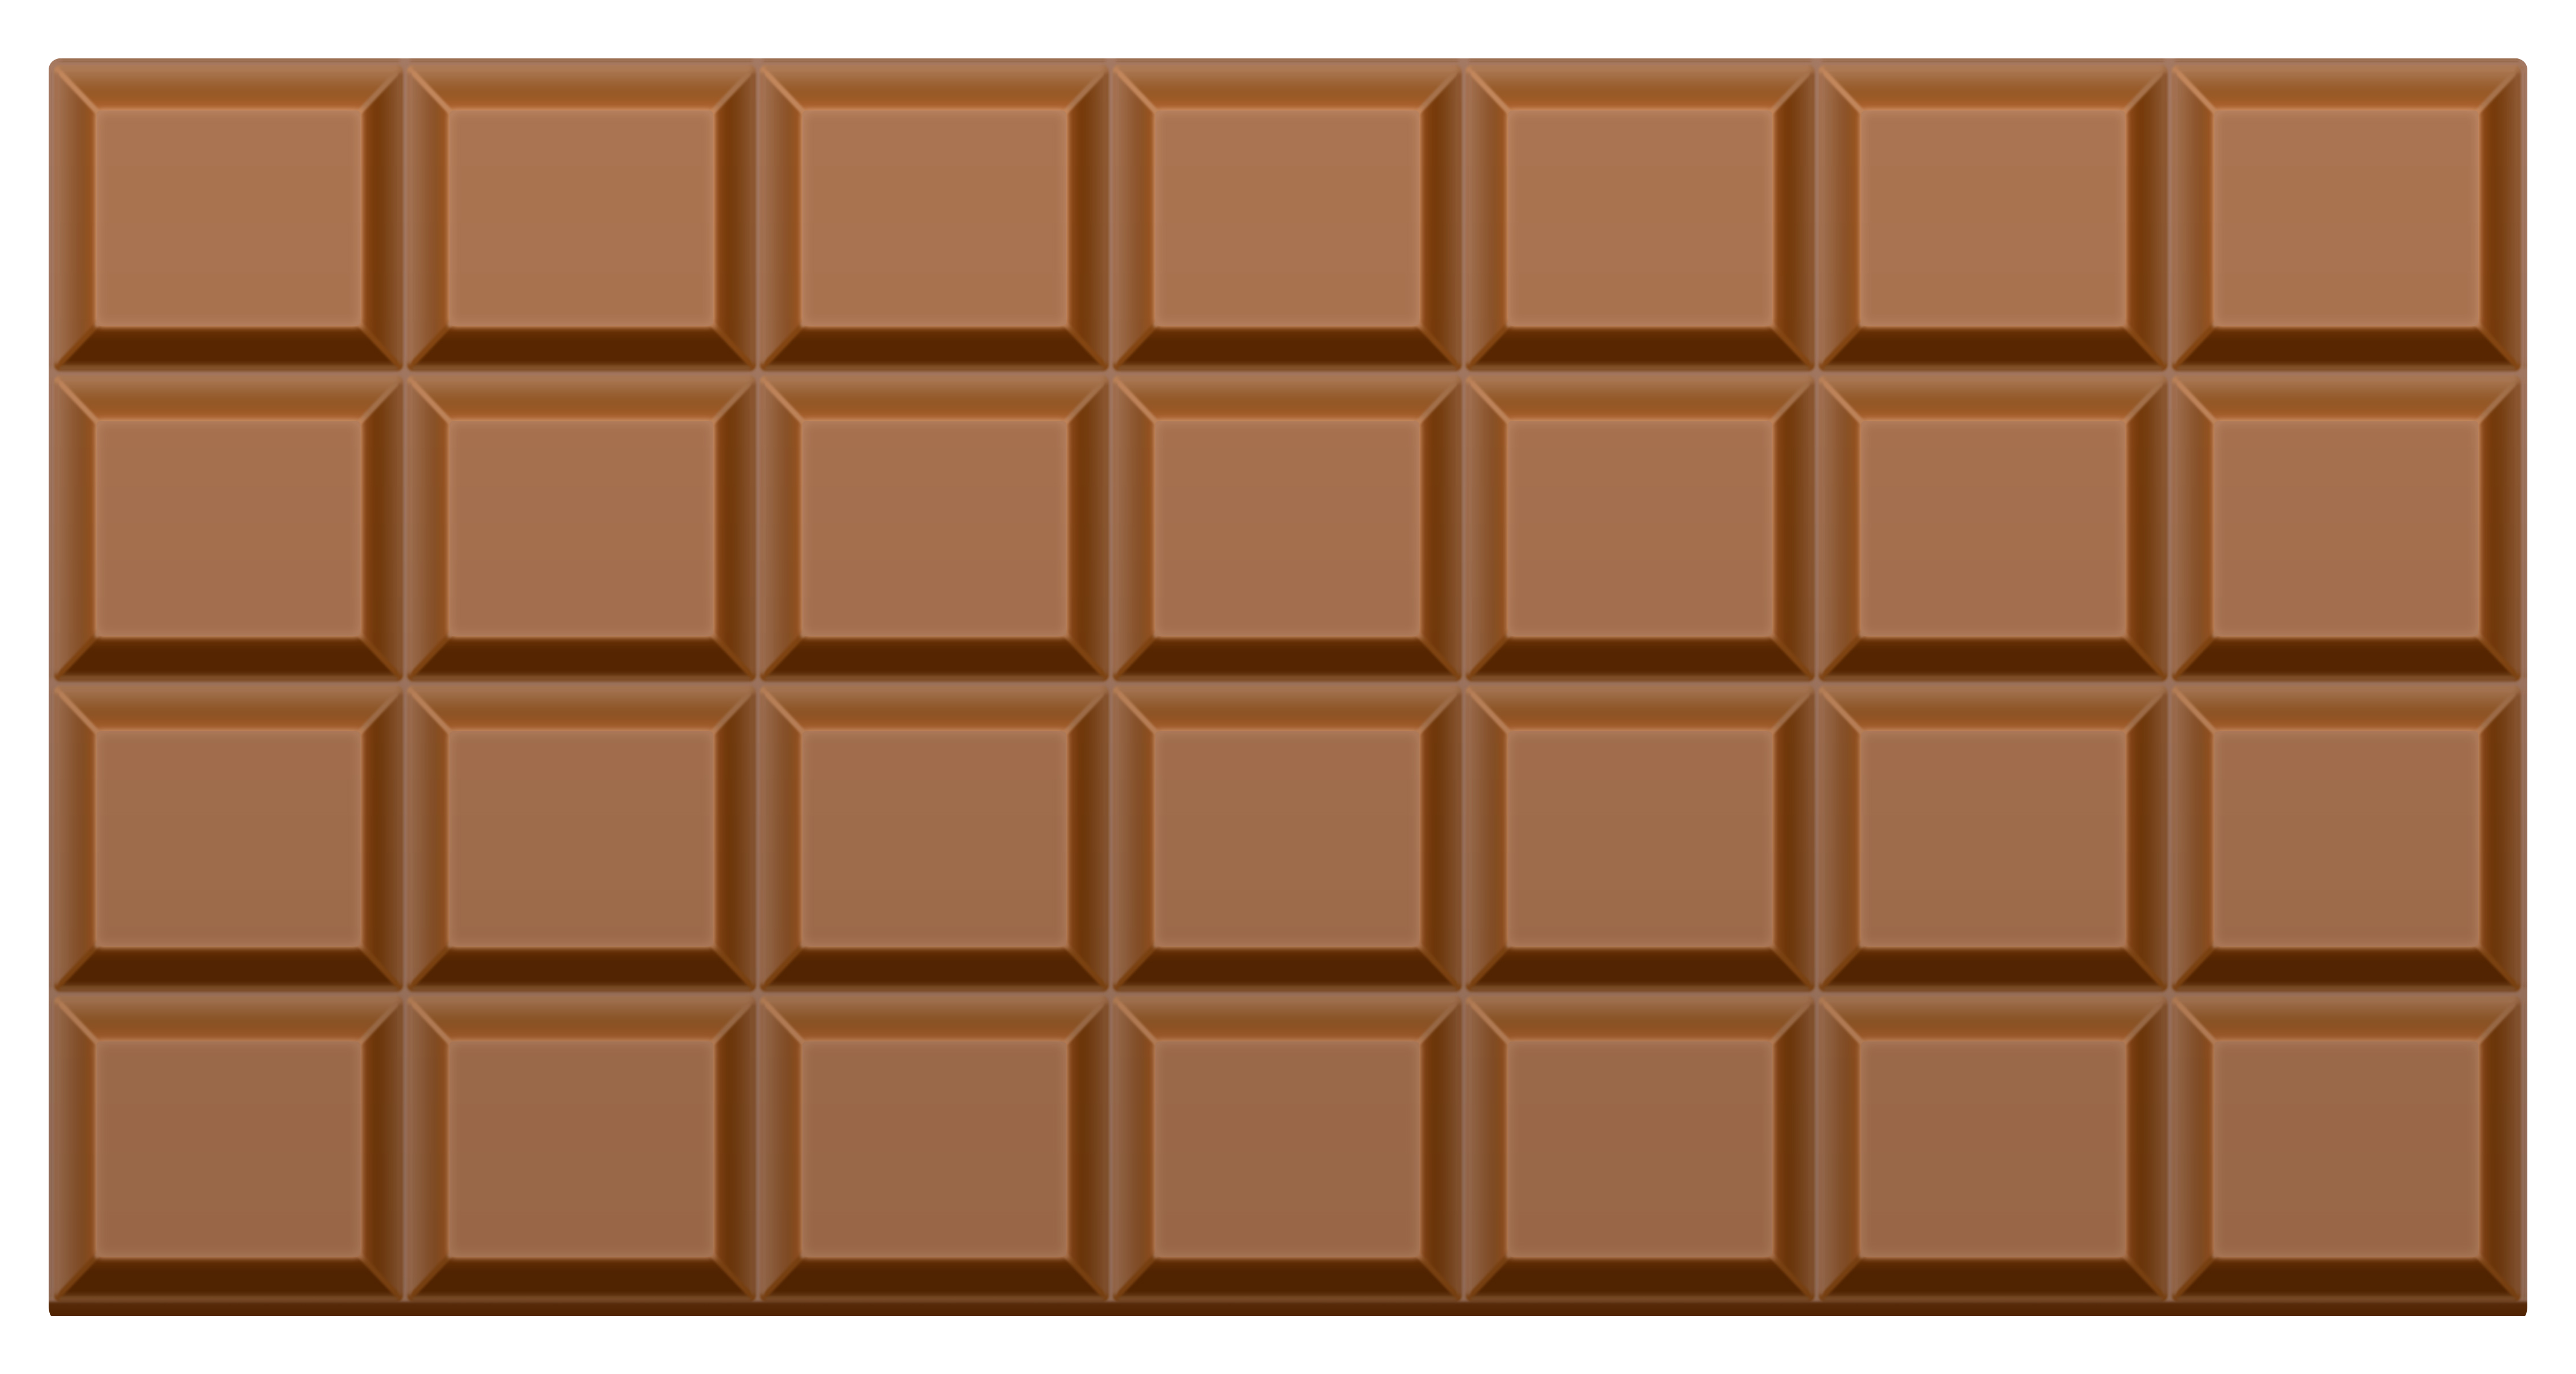 Chocolate bar PNG image